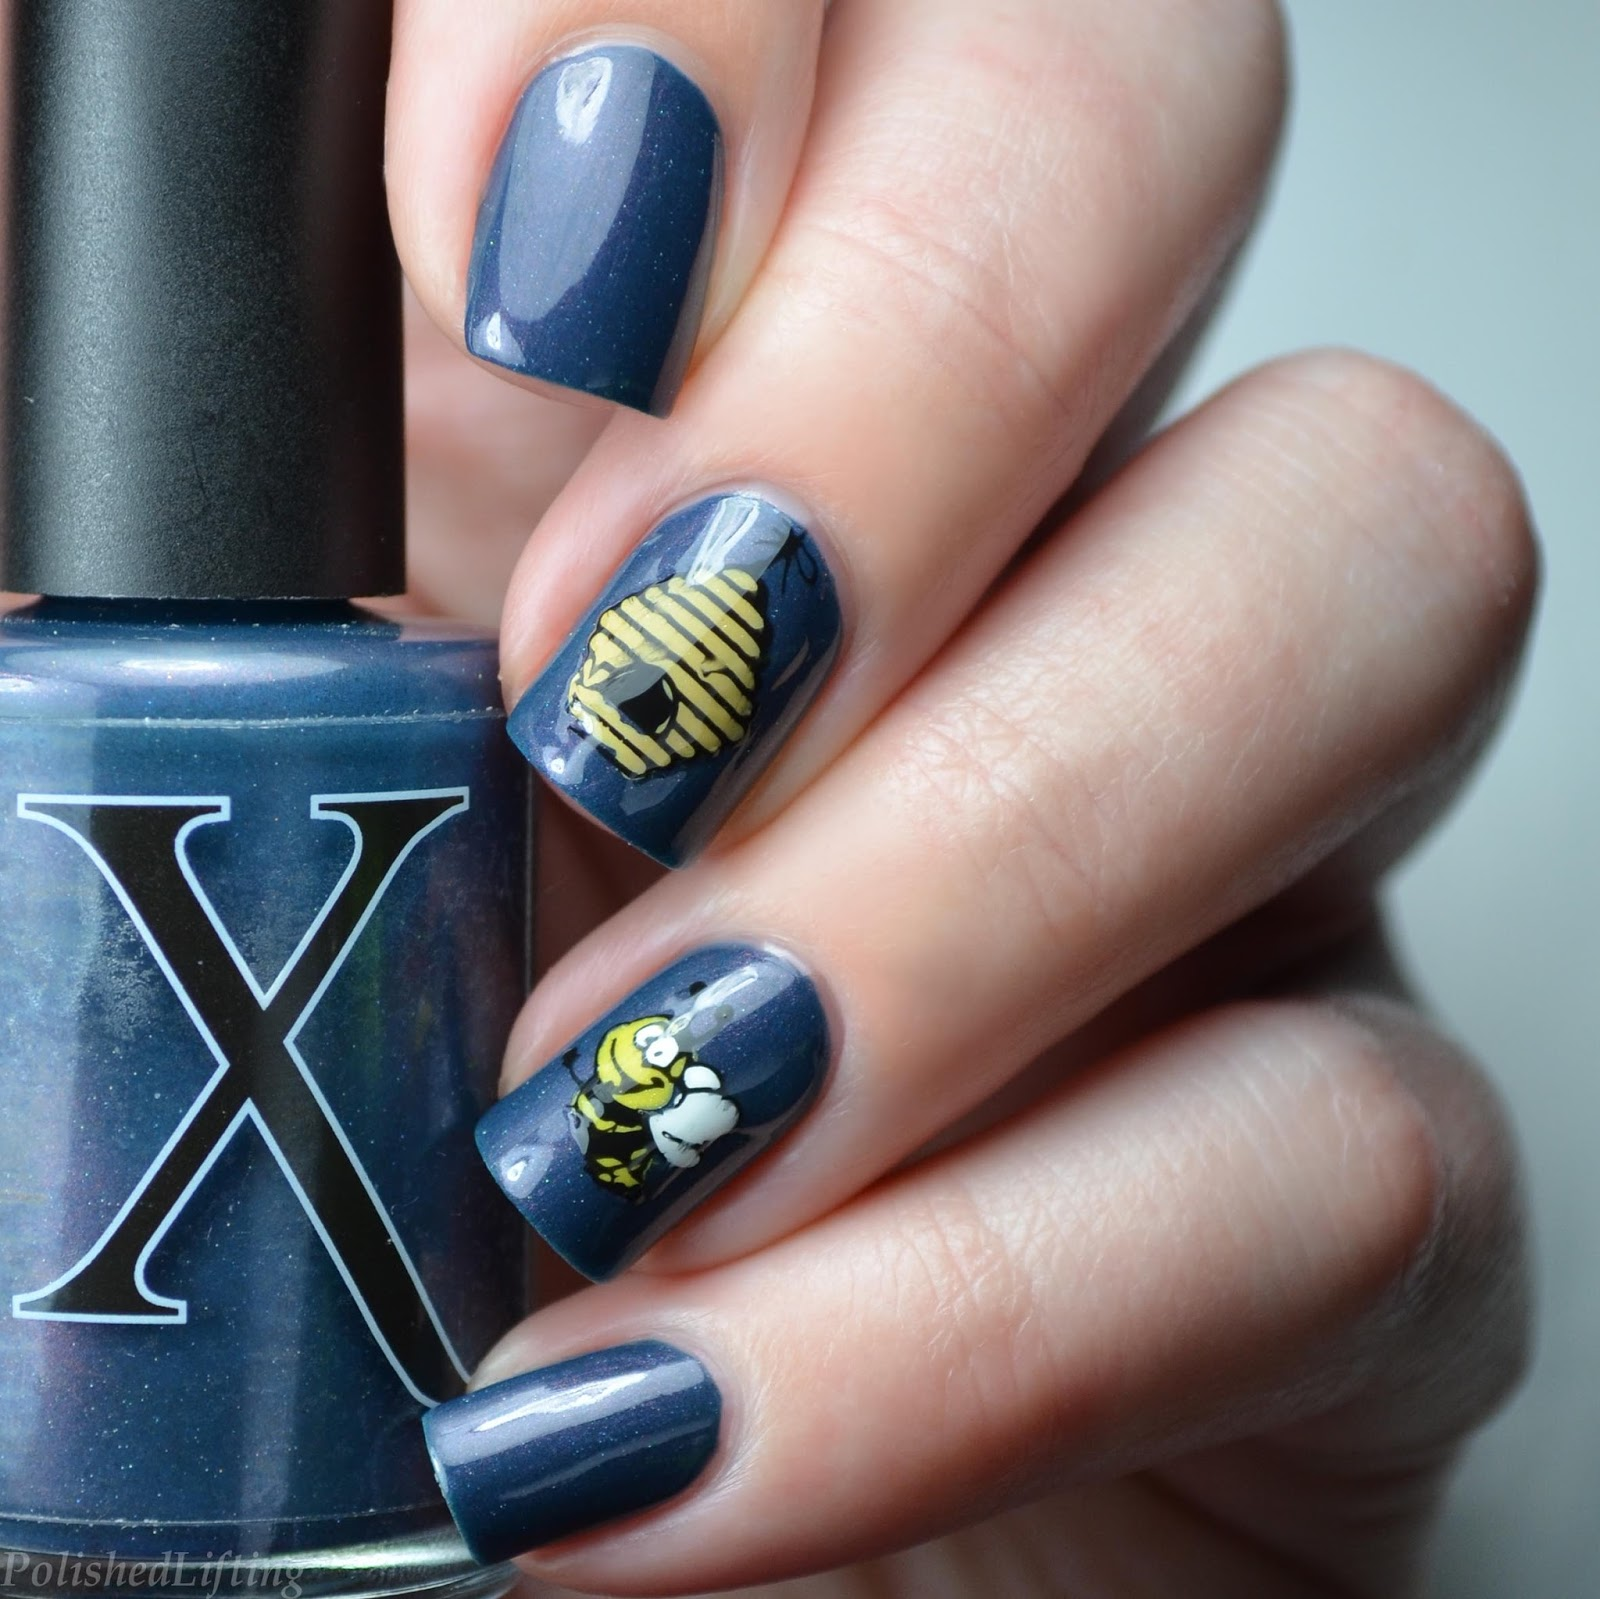 Polished Lifting Honeybee Nail Art Featuring Harunouta And Baroness X